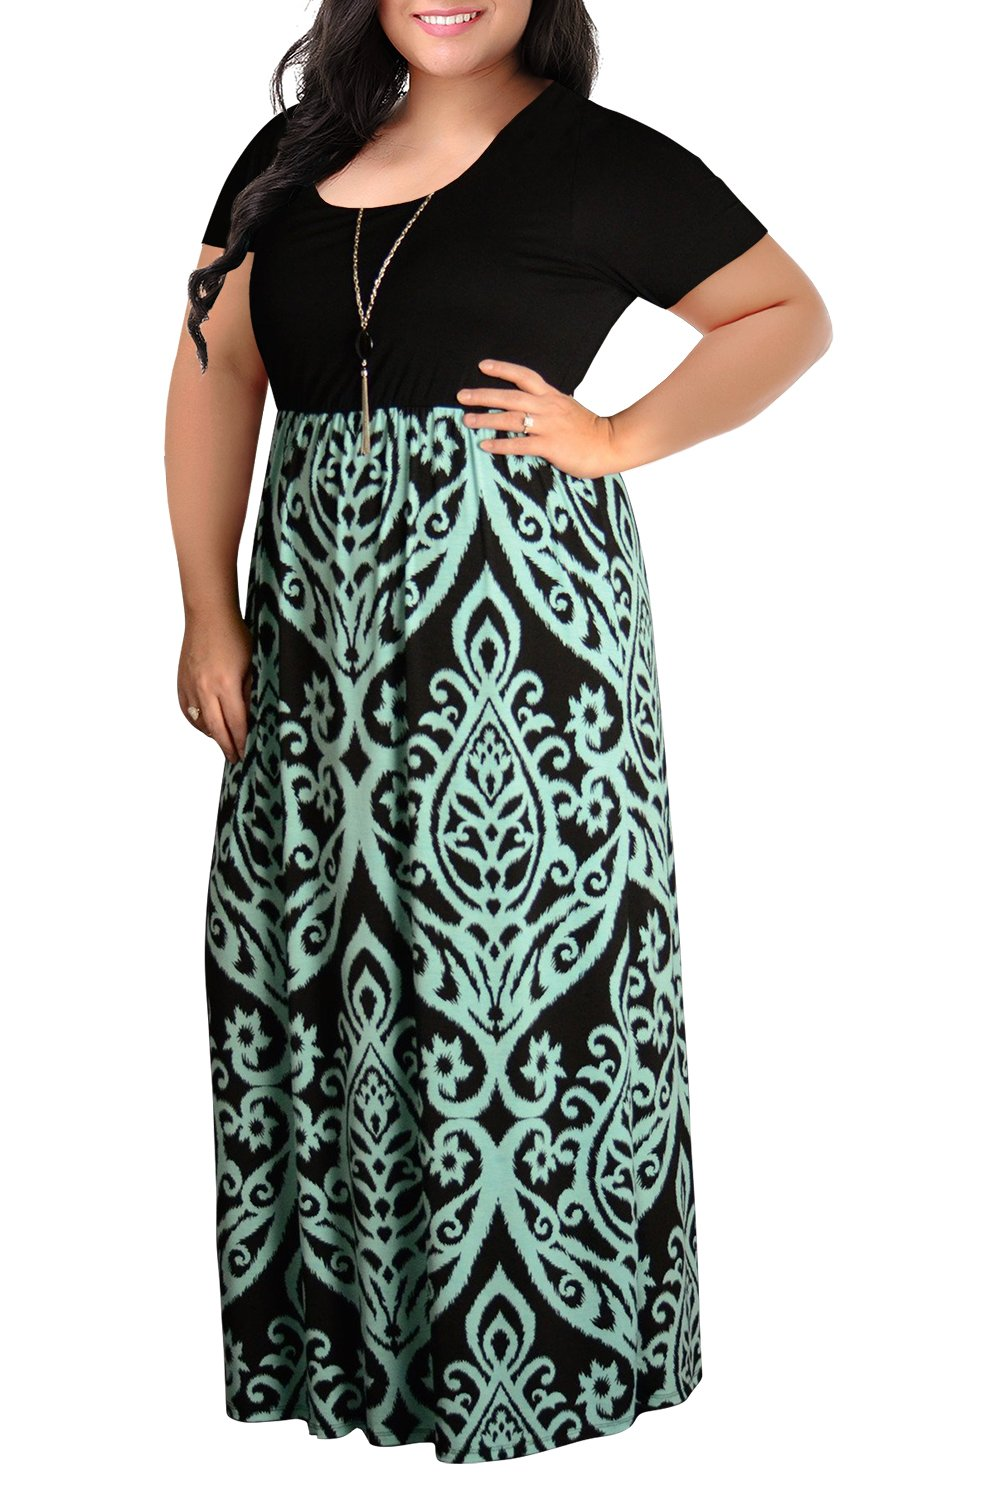 Plus Size Dresses - Women's V-Neckline Stretchy Casual Midi Plus Size Bridesmaid Dress